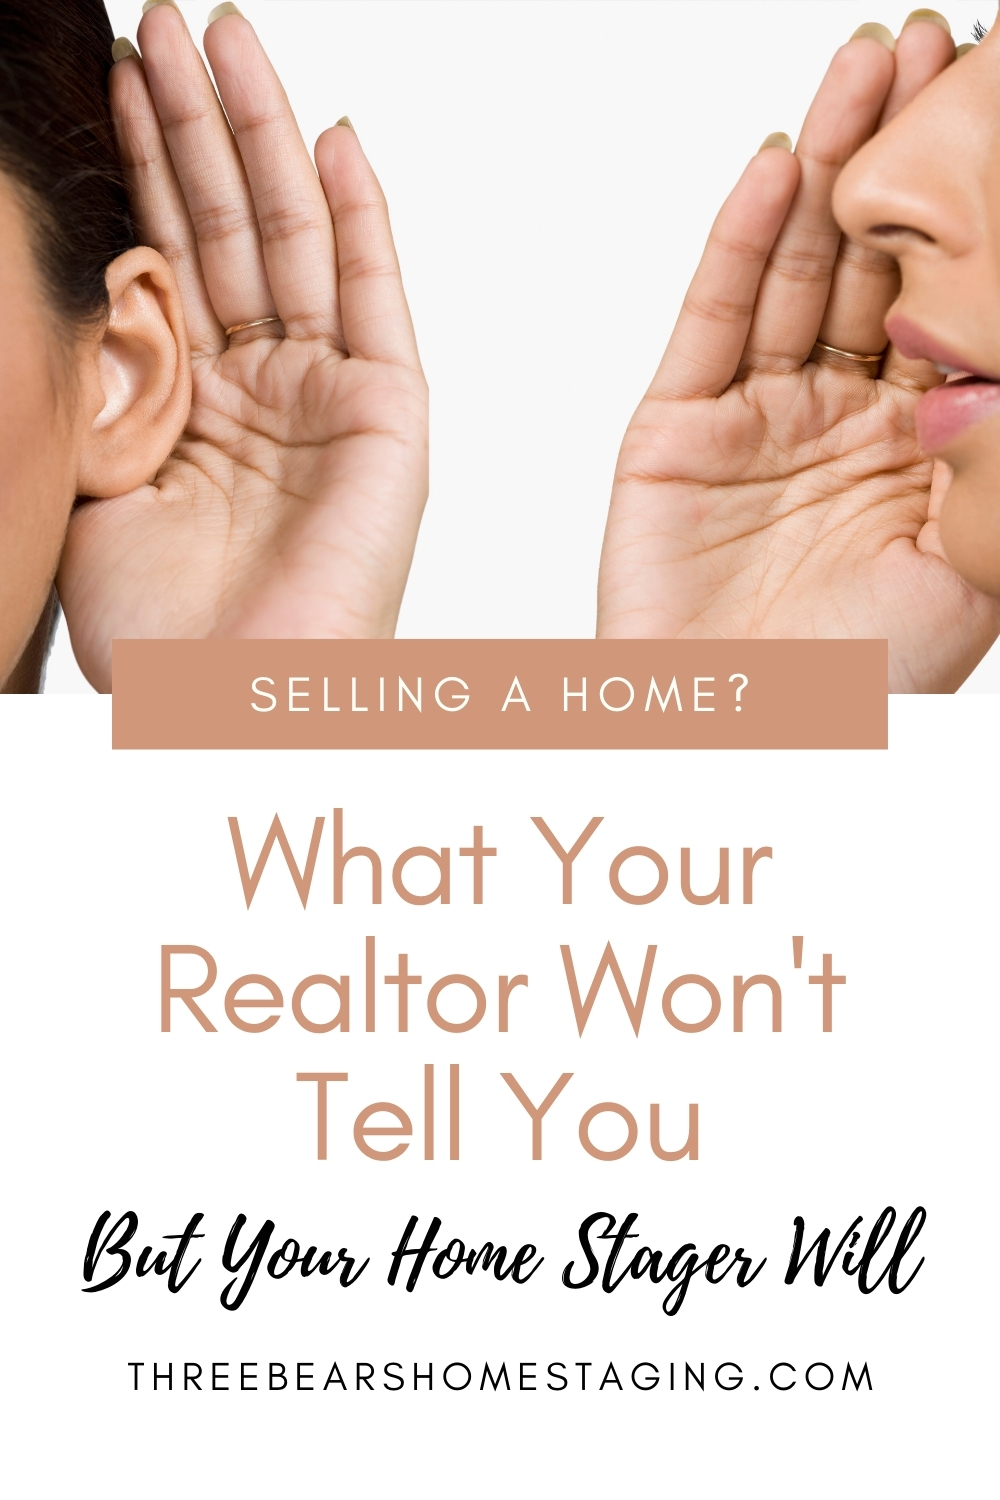 What Your Realtor Won't Tell You